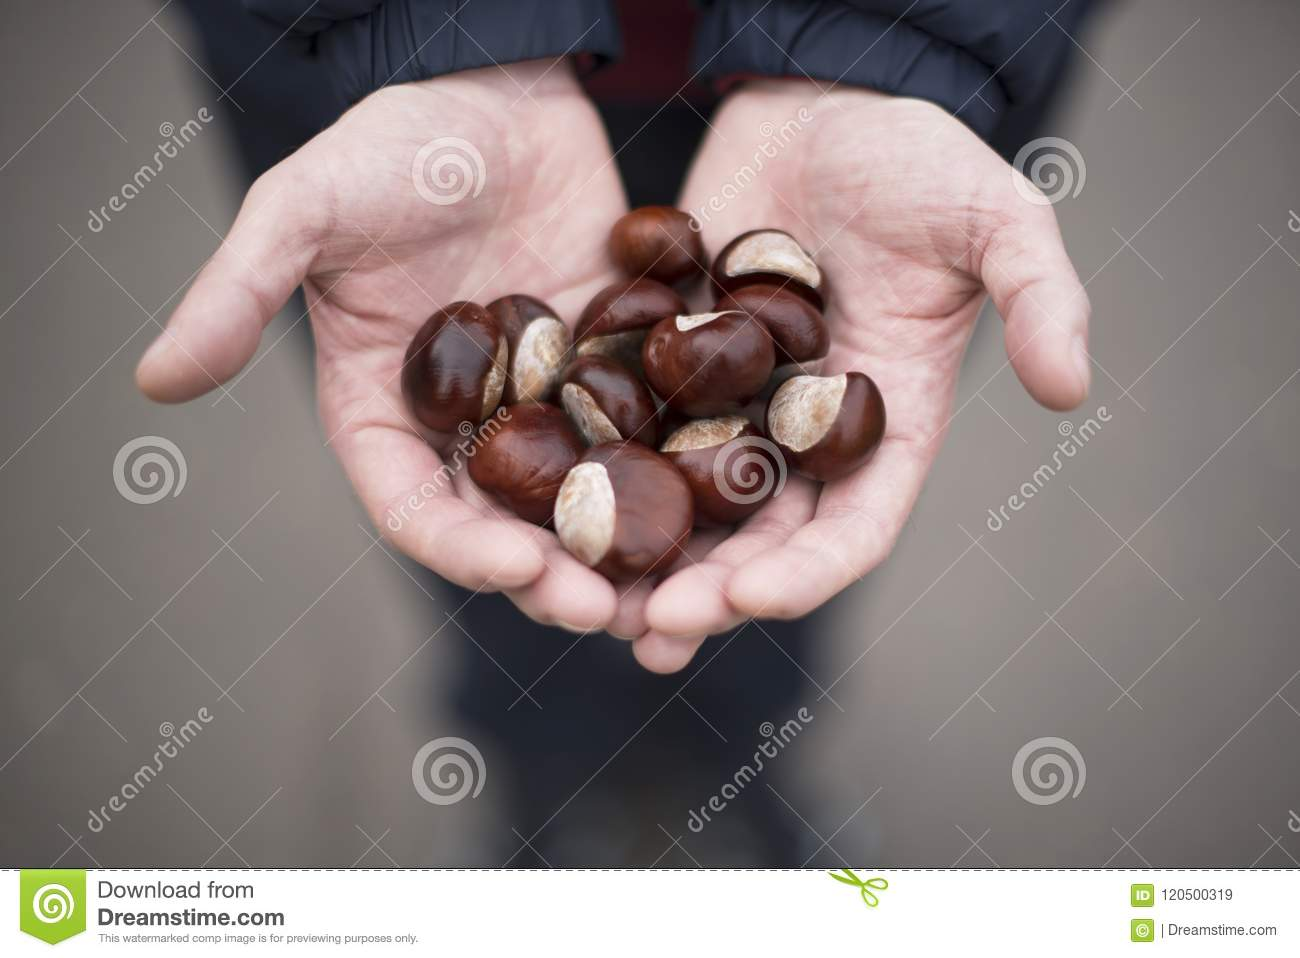 Man holding handful of fresh Chestnuts in the hands.